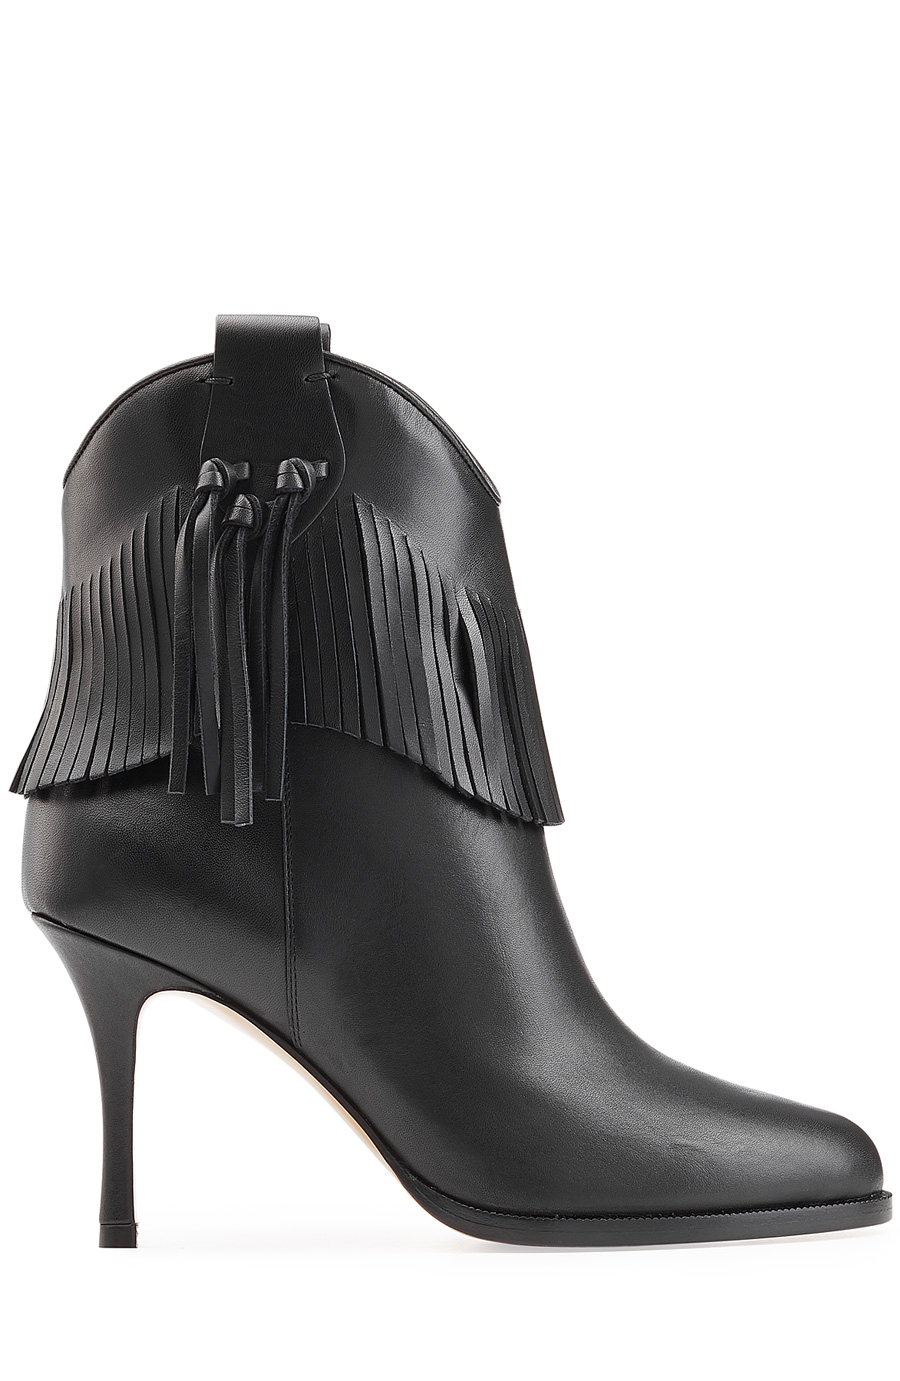 Valentino Leather Boots With Fringe In Black